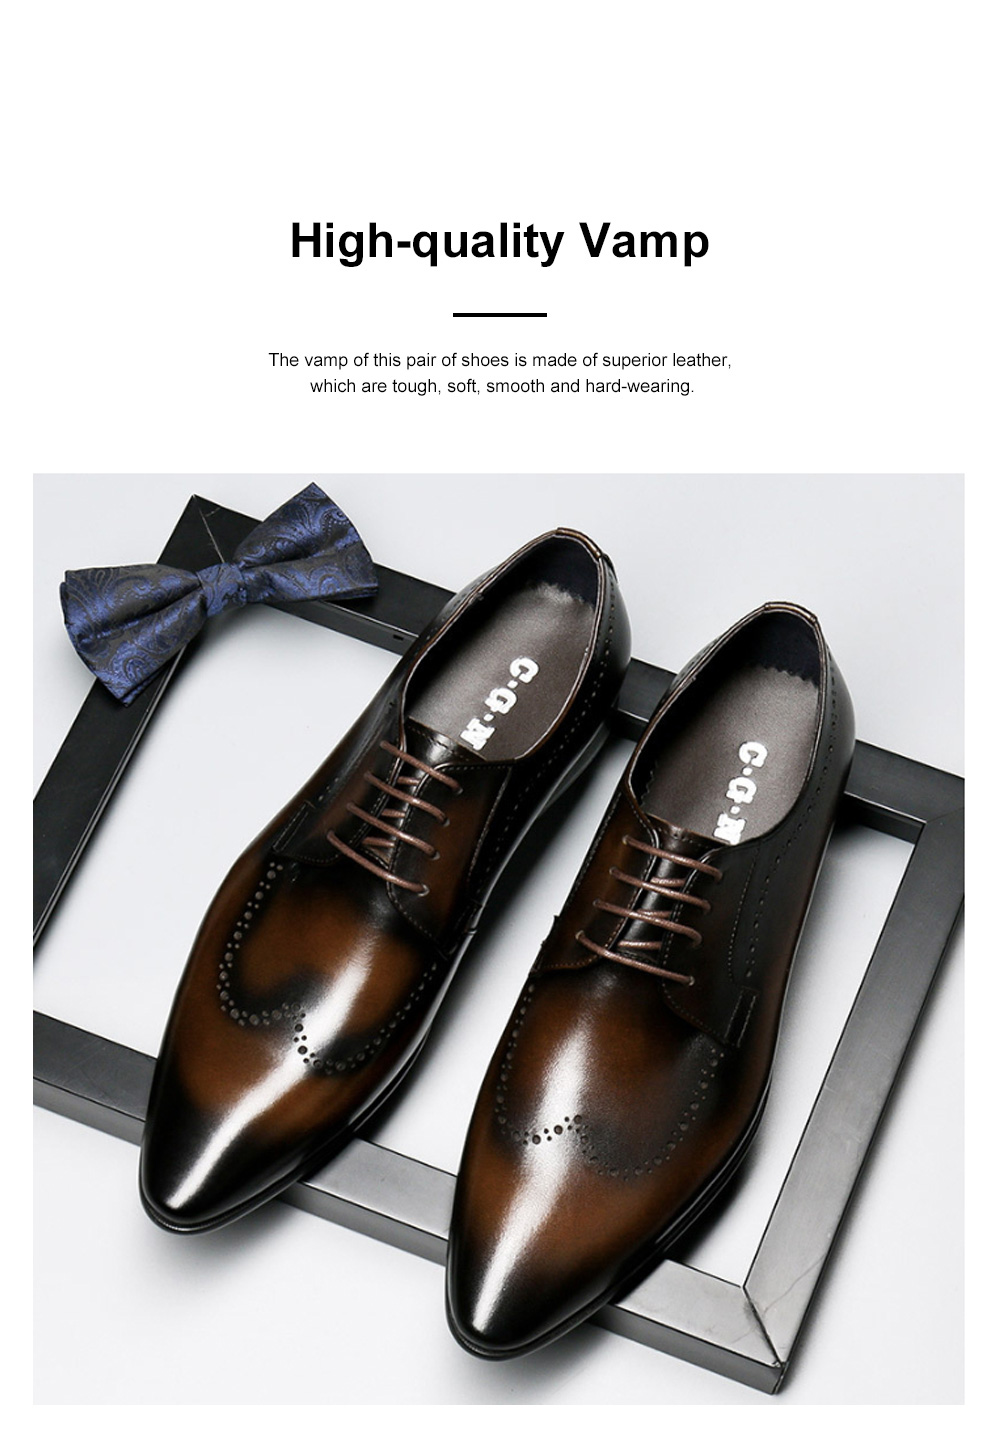 Males Vintage Stylish Minimalist Business Shoes Man Pointy Pint-tipped Leather Shoes with Anti-skid Rubber Sole 1